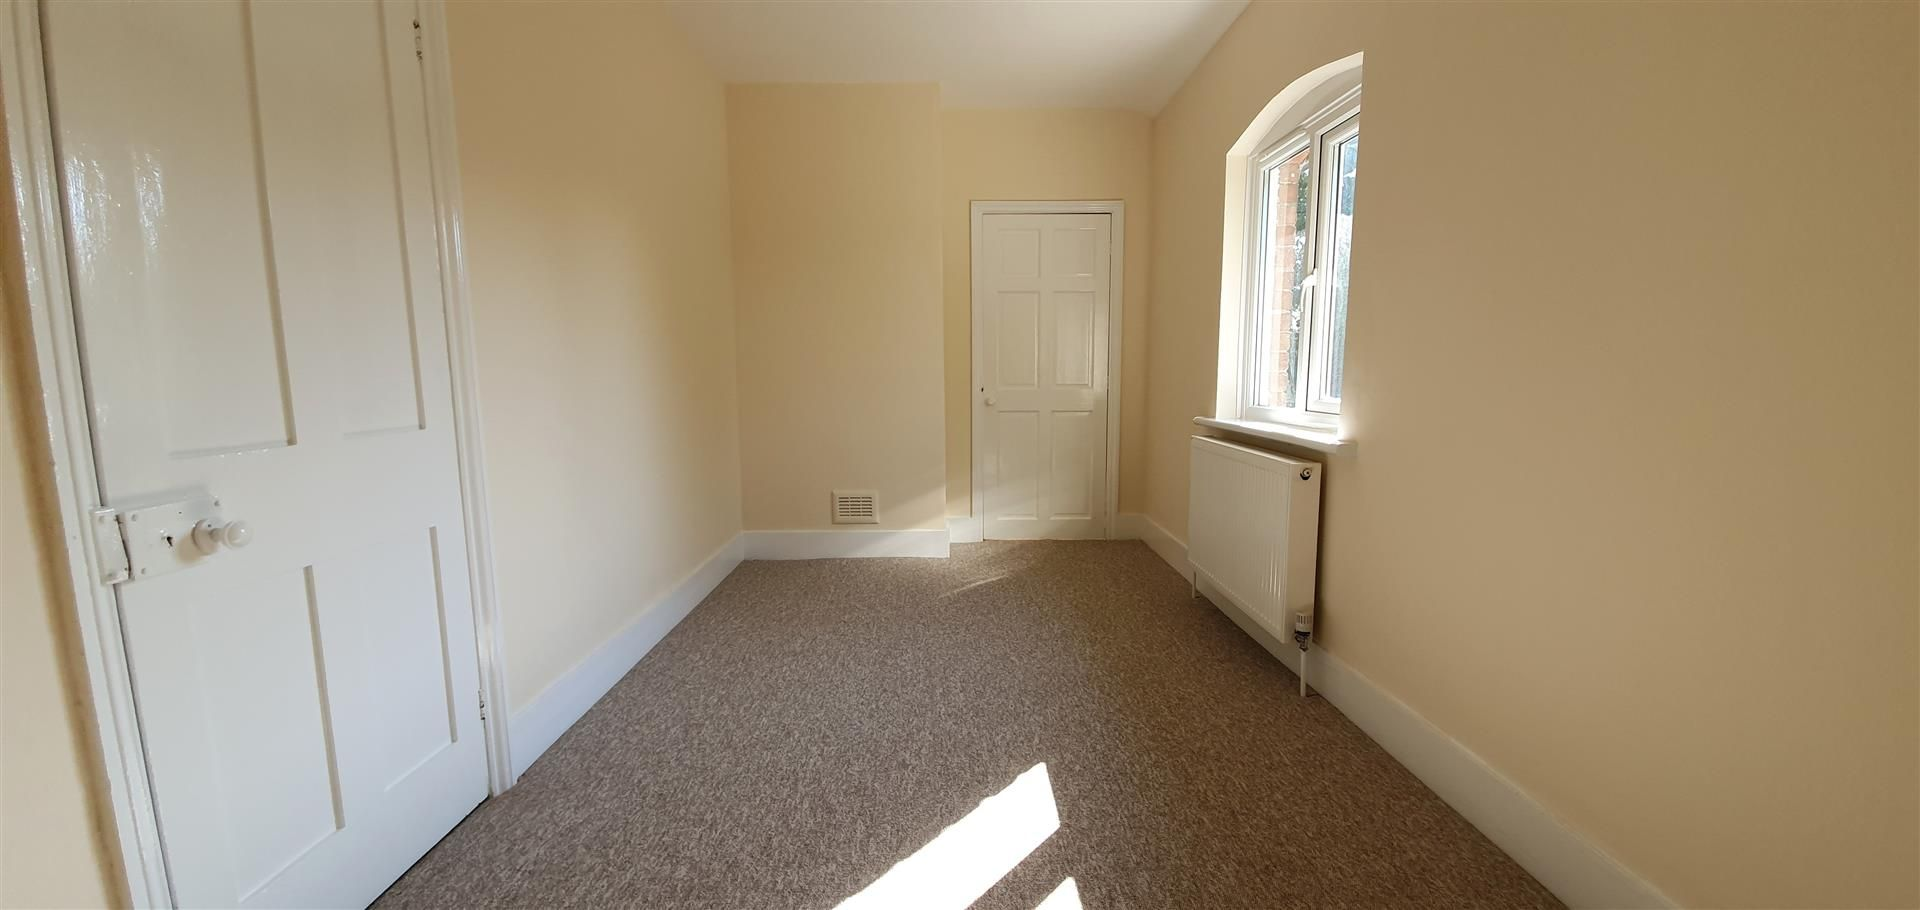 4 bed house to rent in Breinton 10